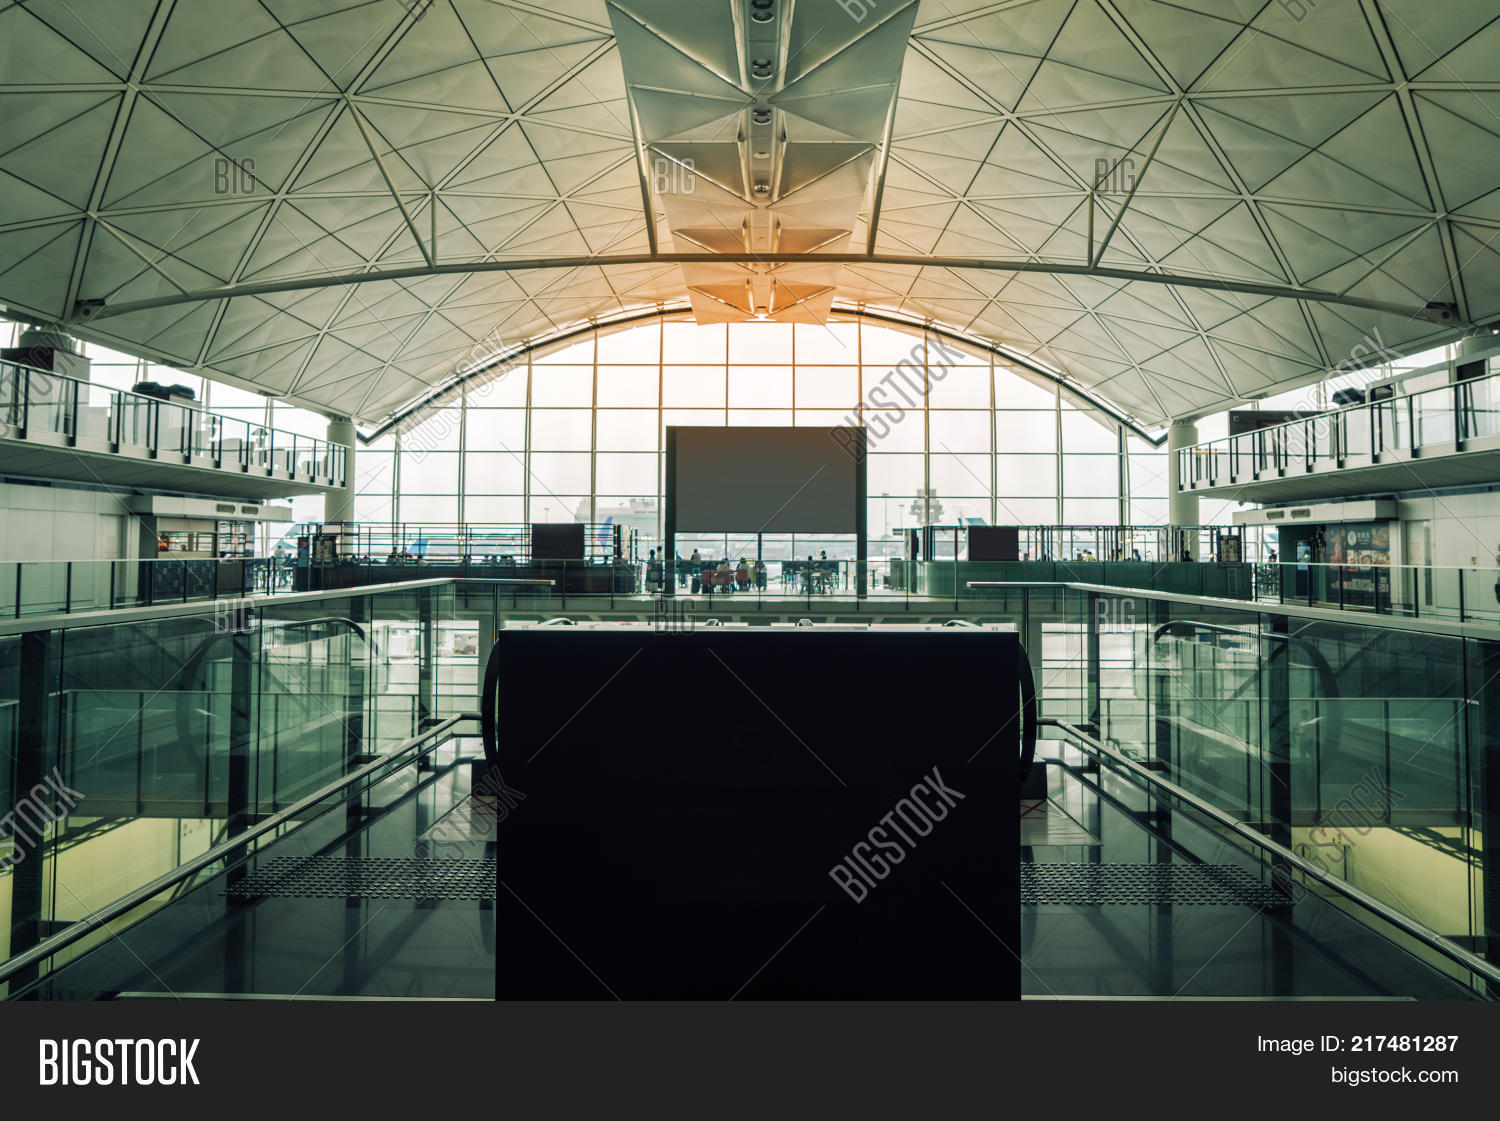 Pleasant Business Travel Help Image Photo Free Trial Bigstock Download Free Architecture Designs Xerocsunscenecom